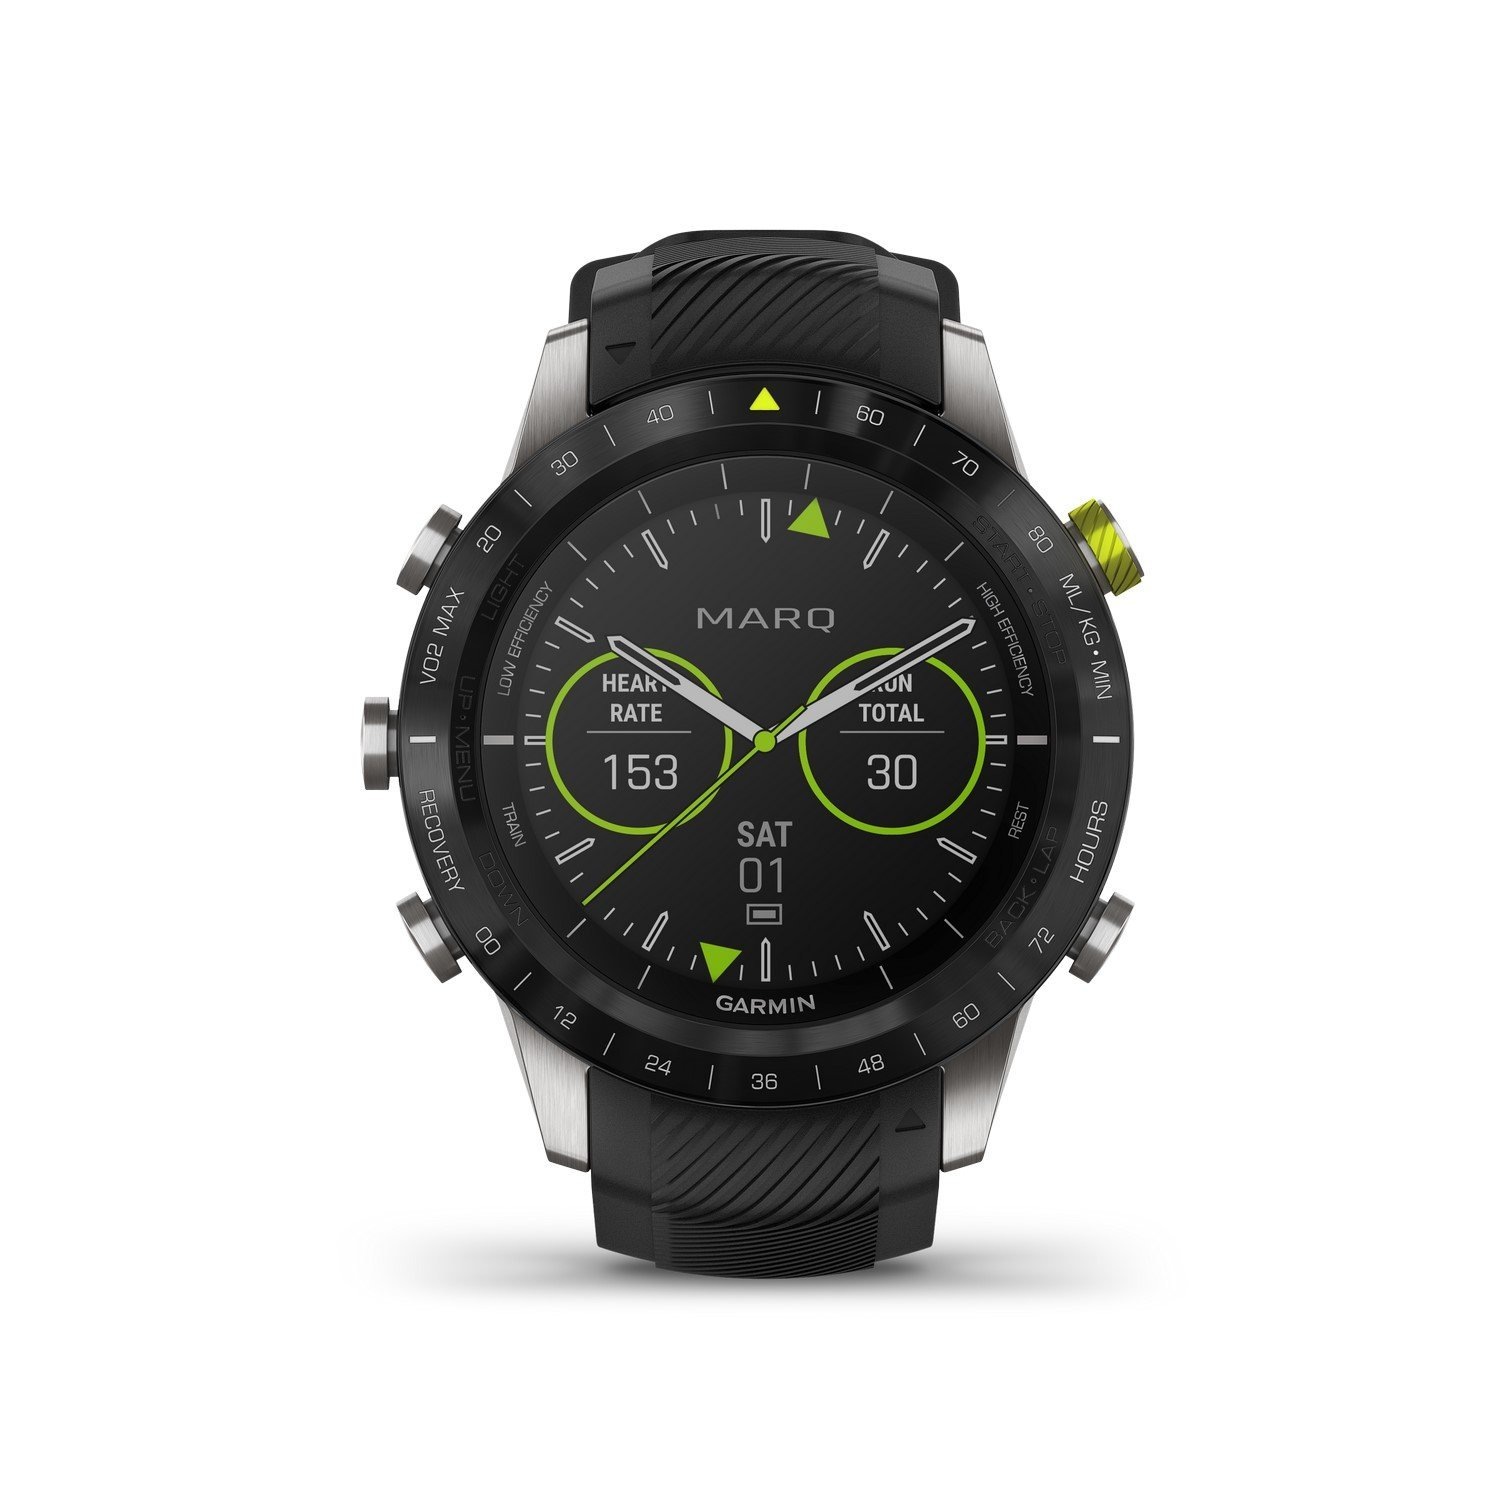 Montre Garmin Marq Athlete vue 1